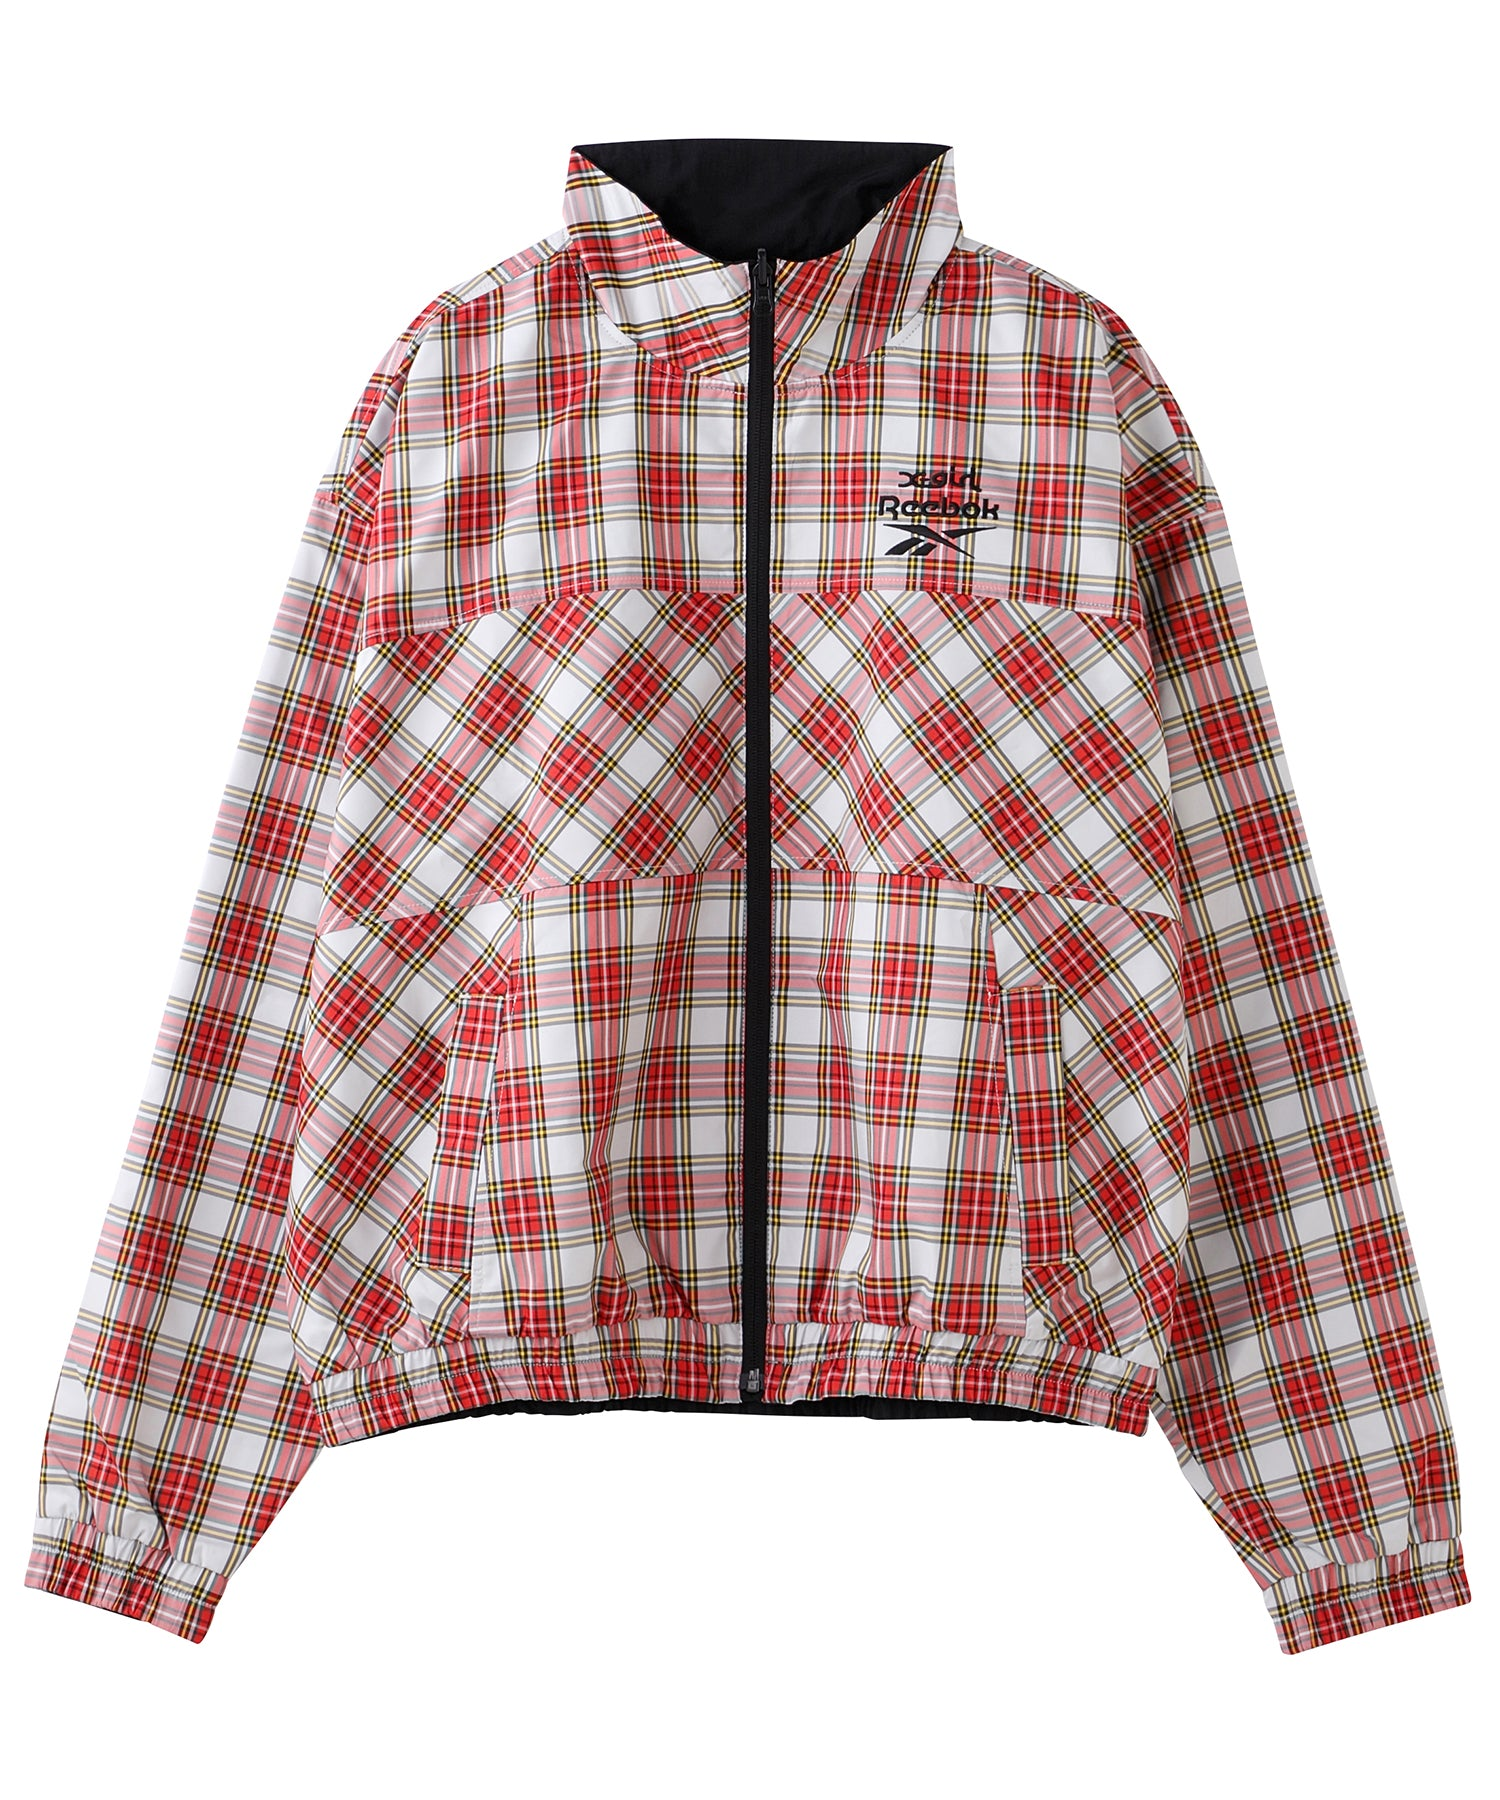 X-girl × Reebok PLAID TRACK JACKET